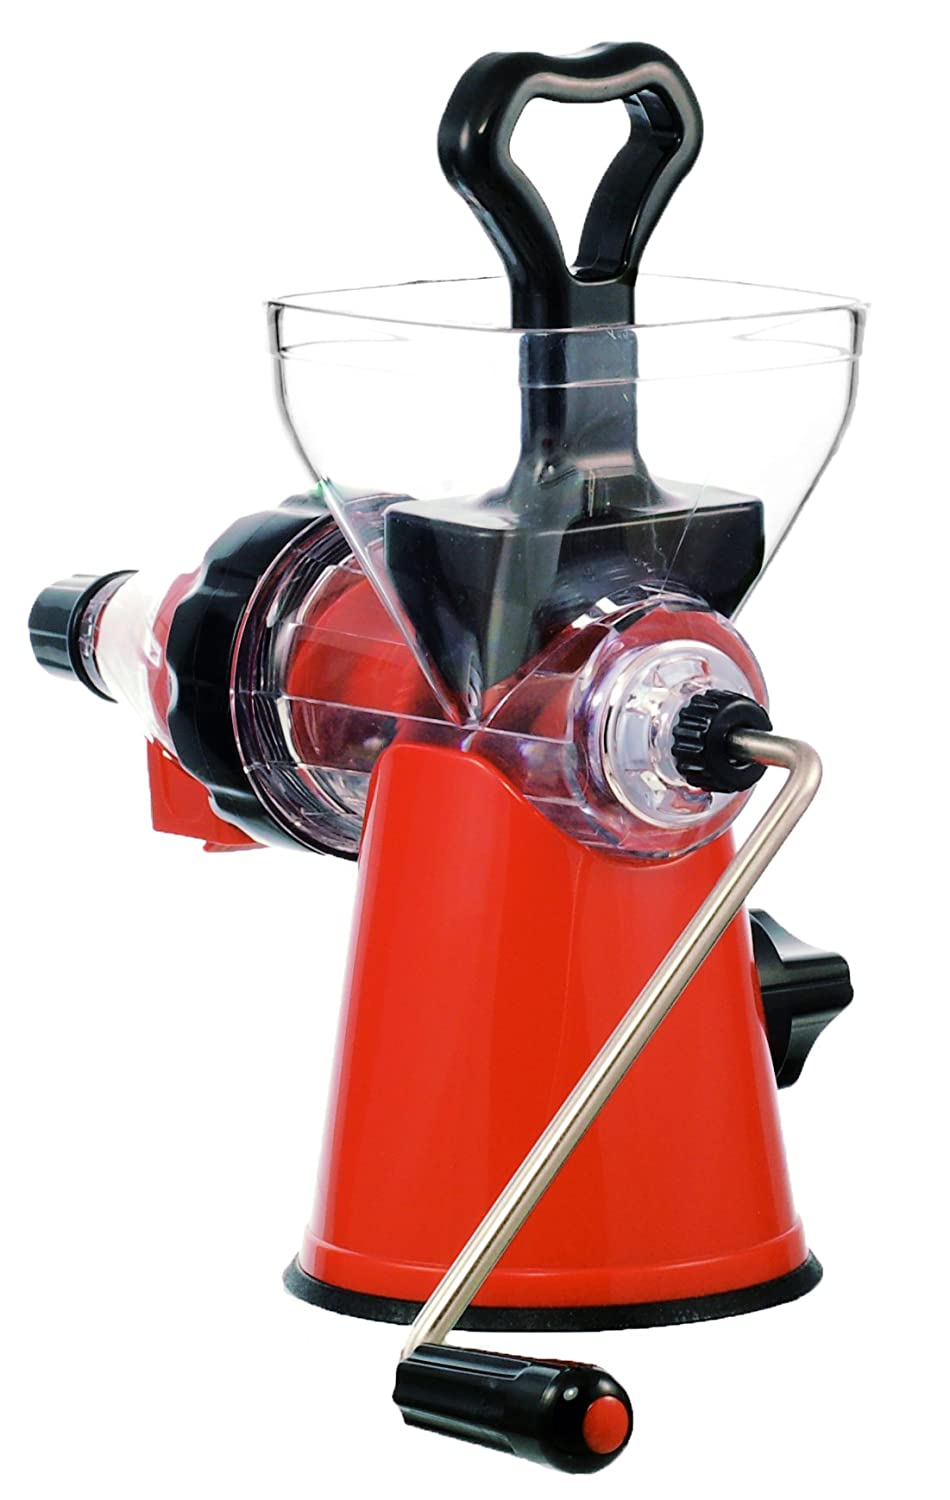 Hand Operated Slow Juicer : ZWEISSEN Hand Operated Fruit vegetable Masticating Slow juicer Cold Press pulp e eBay